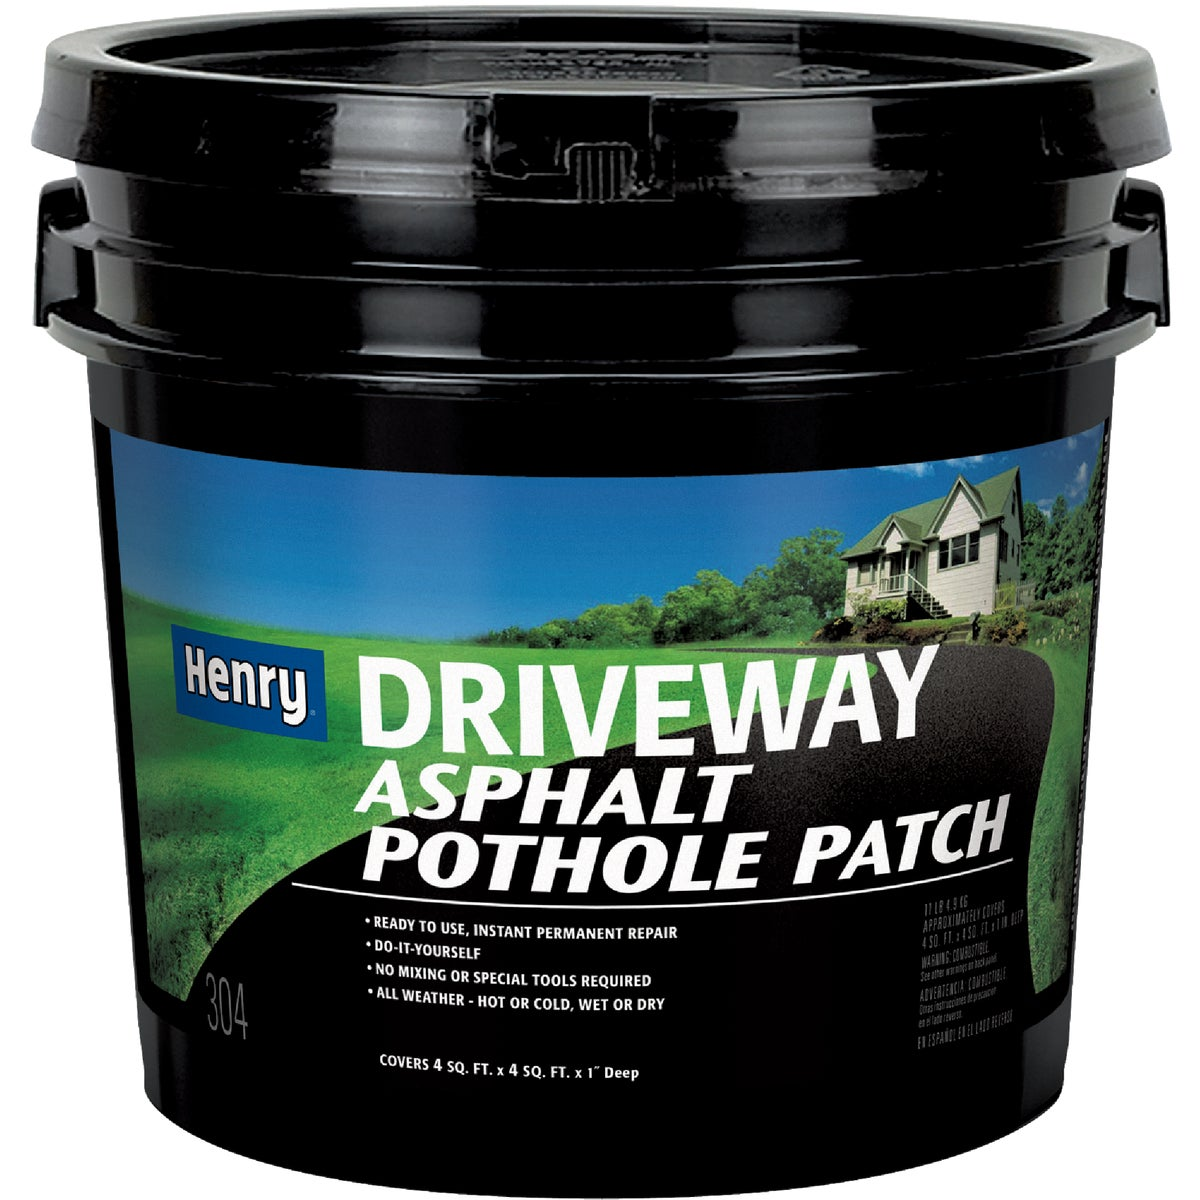 GL DRVWAY POTHOLE PATCH - HE304044 by Henry Company